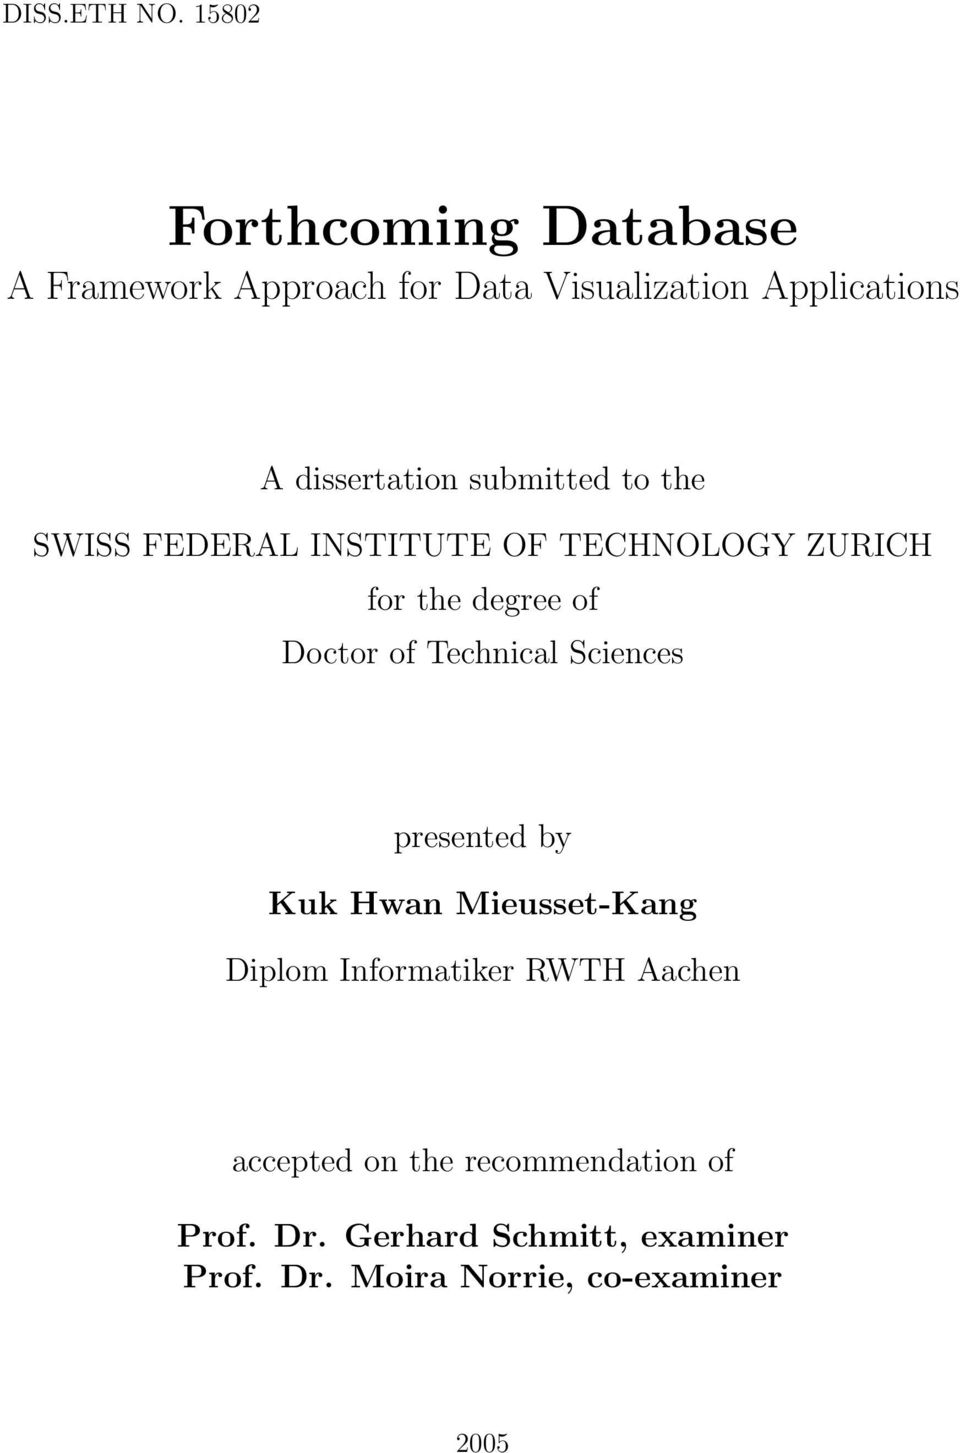 submitted to the SWISS FEDERAL INSTITUTE OF TECHNOLOGY ZURICH for the degree of Doctor of Technical